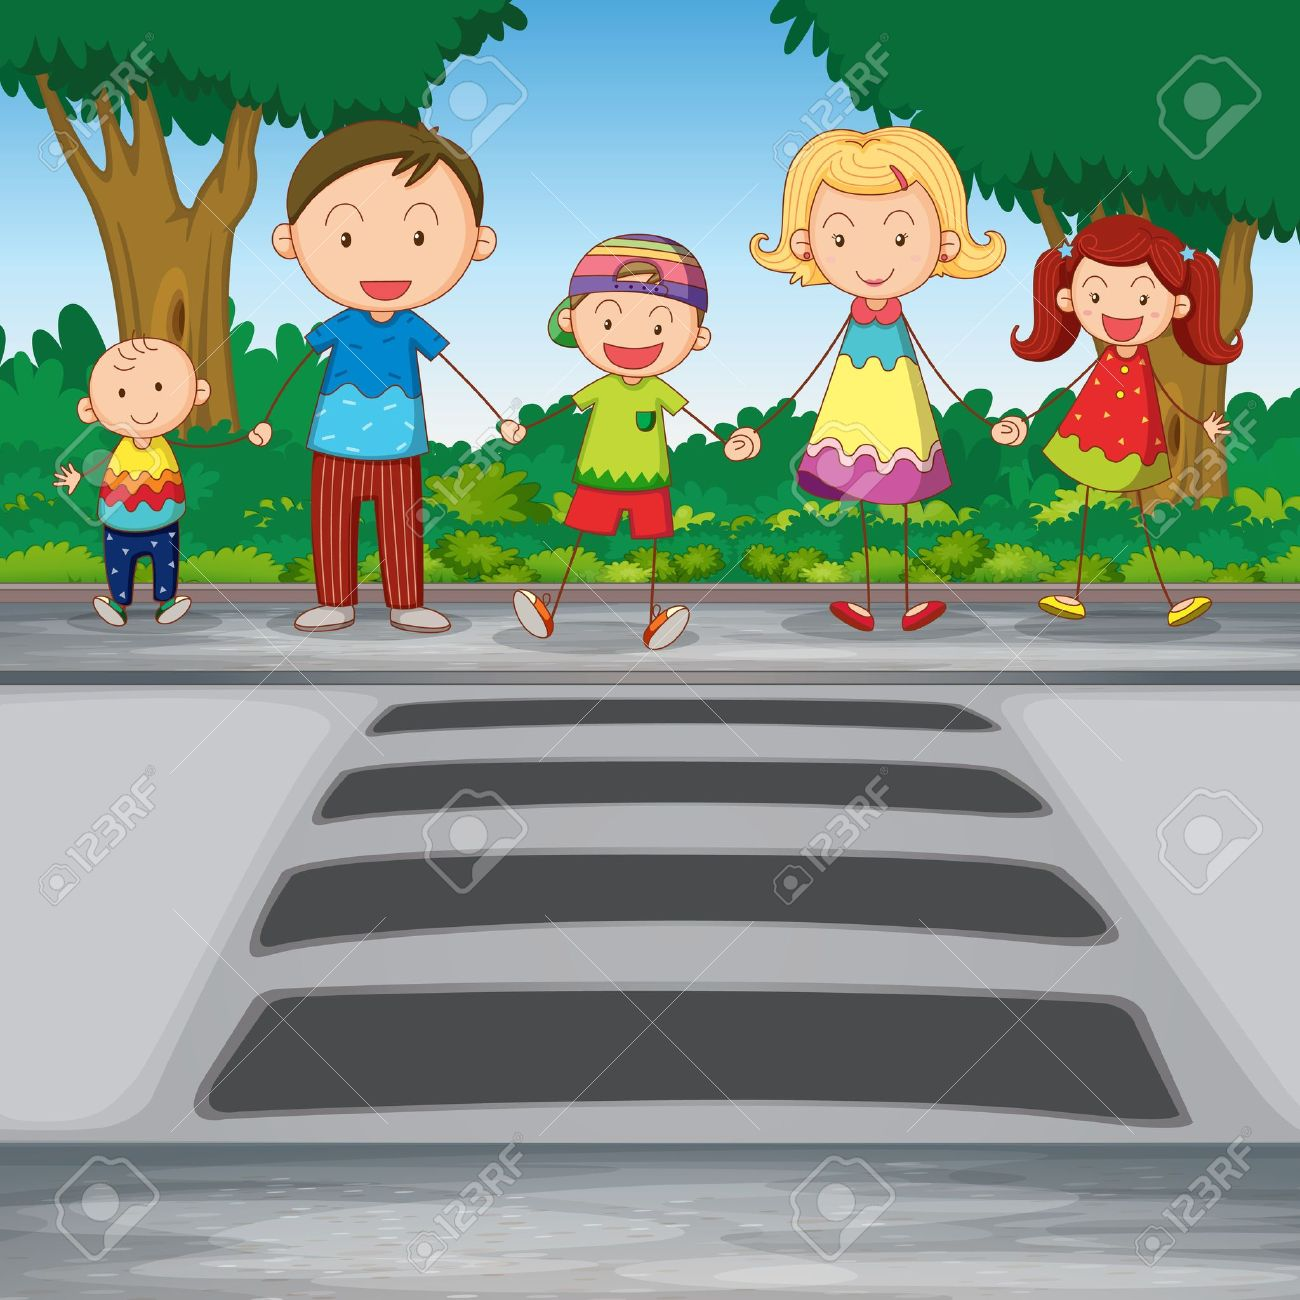 illustration of family waiting for crossing road Stock Vector - 14347315